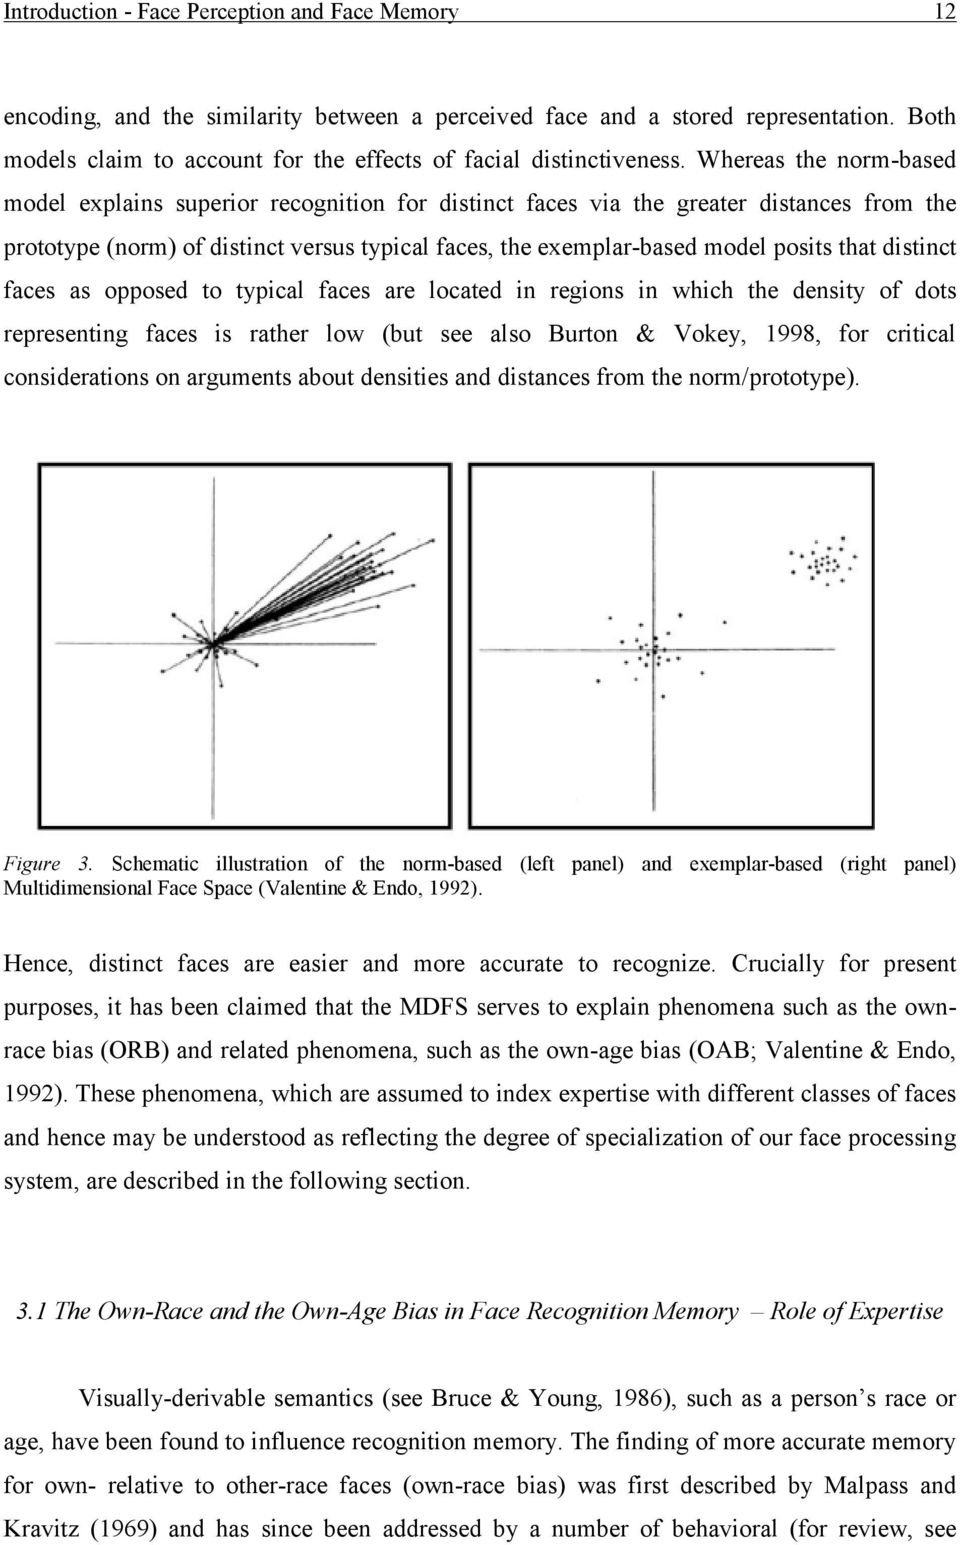 Whereas the norm-based model explains superior recognition for distinct faces via the greater distances from the prototype (norm) of distinct versus typical faces, the exemplar-based model posits